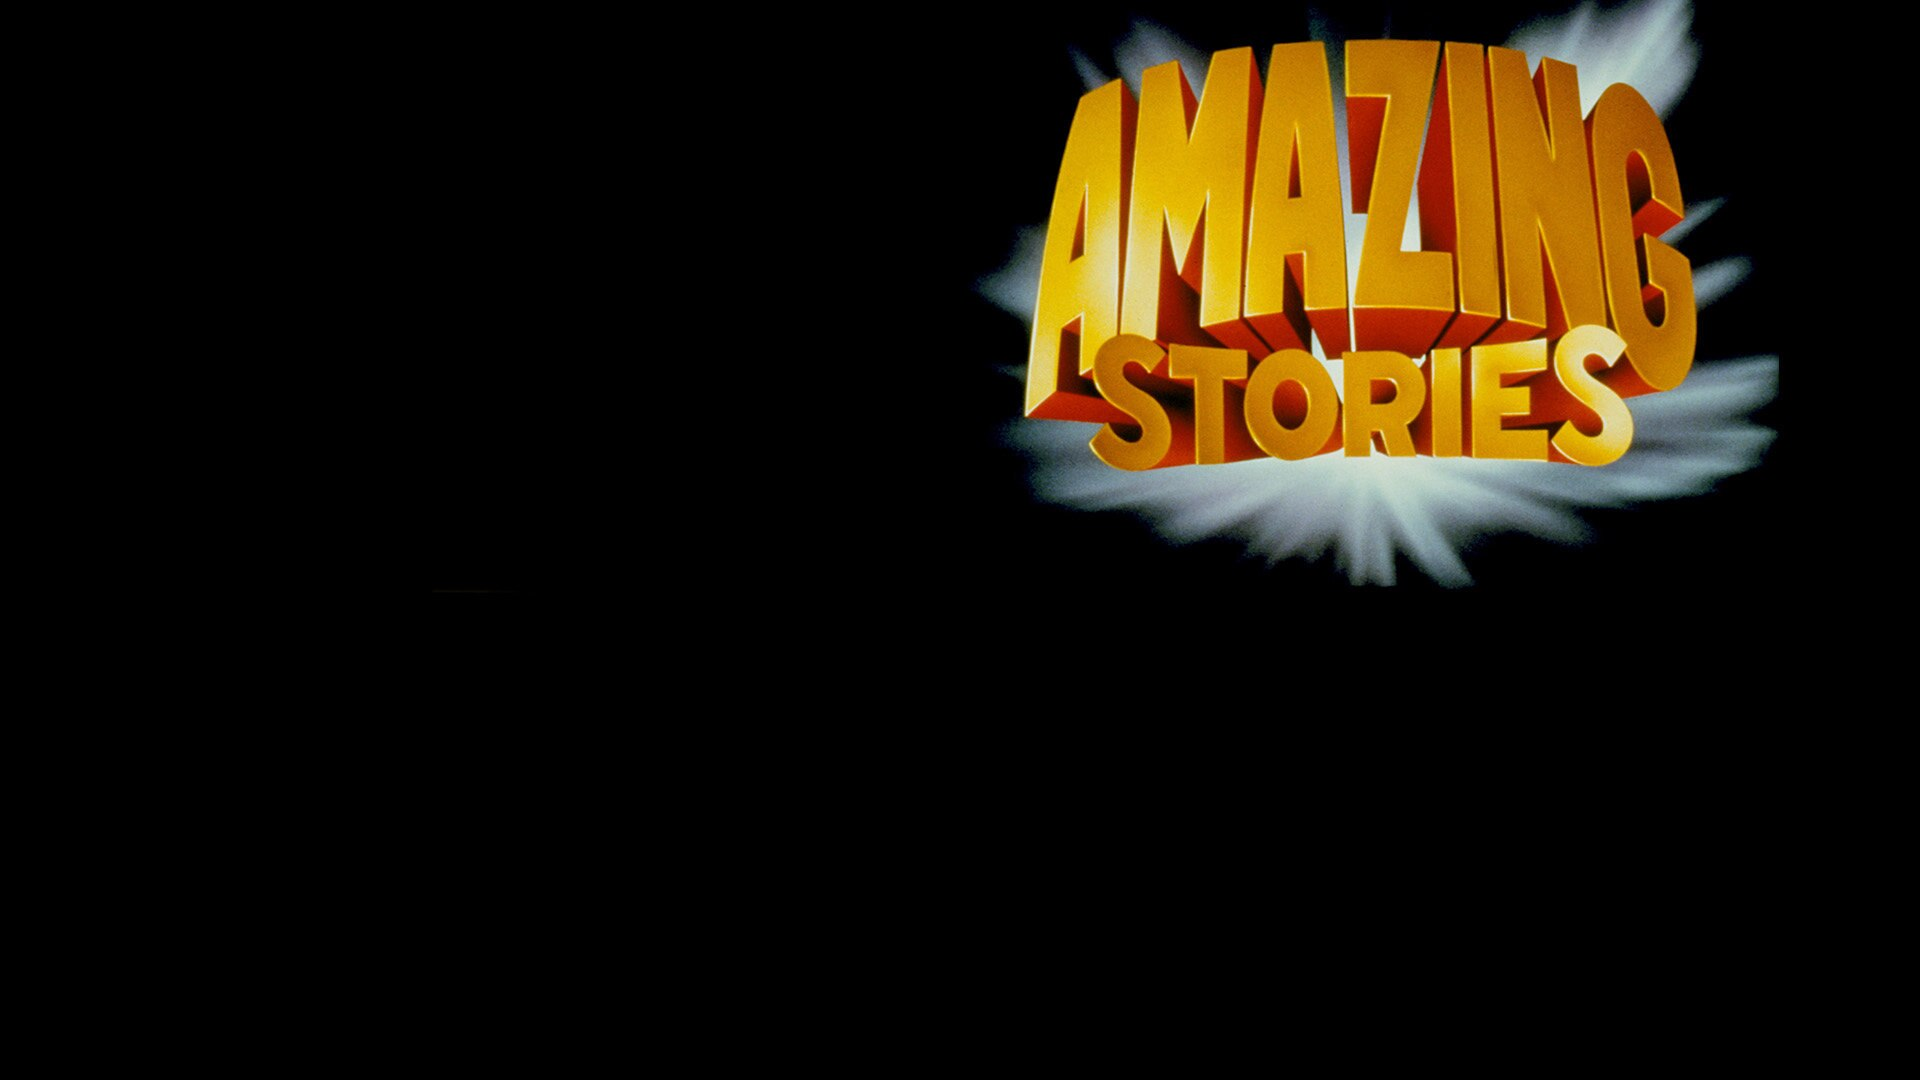 Amazing Stories Responsive Key Art Dynamic Lead Slide